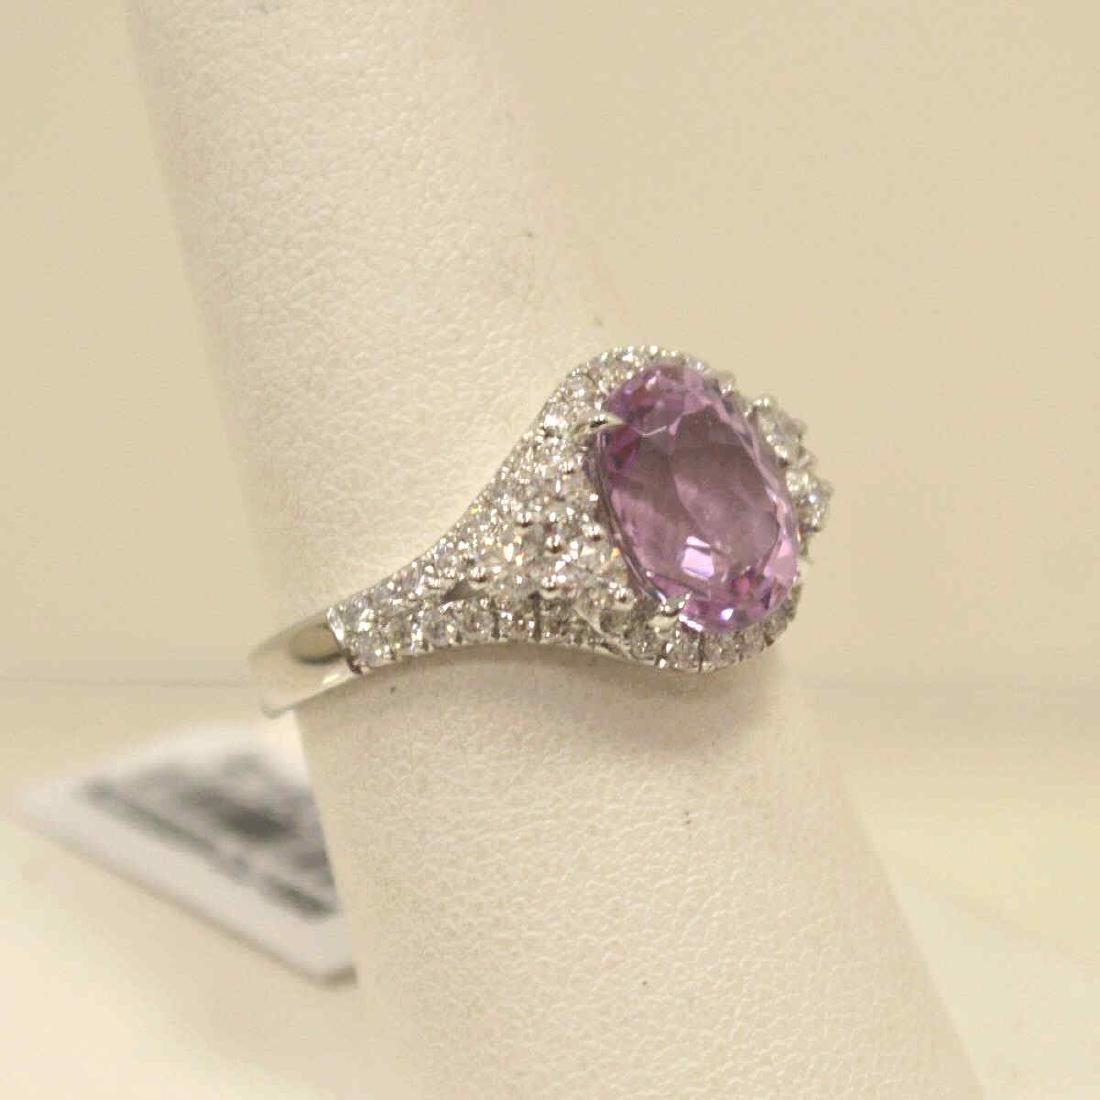 14kt white gold kunzite and diamond ring - 2